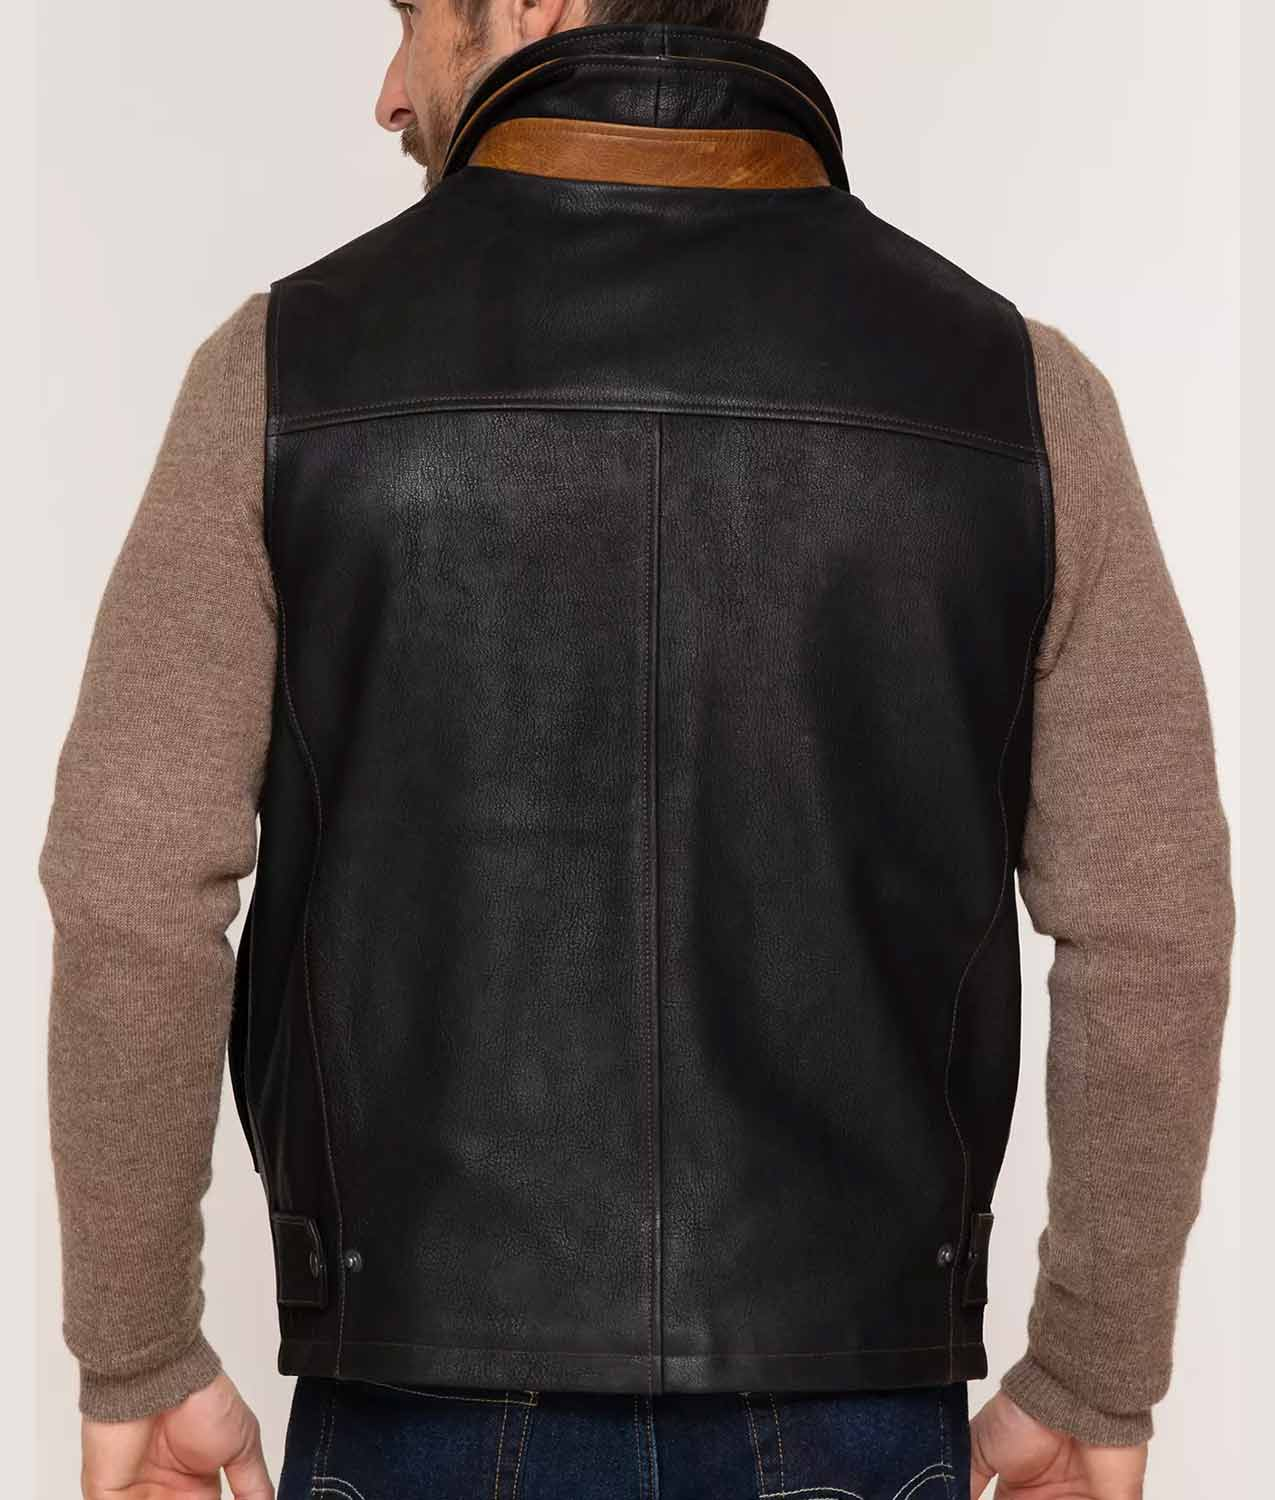 Mens Goatskin Leather Vest